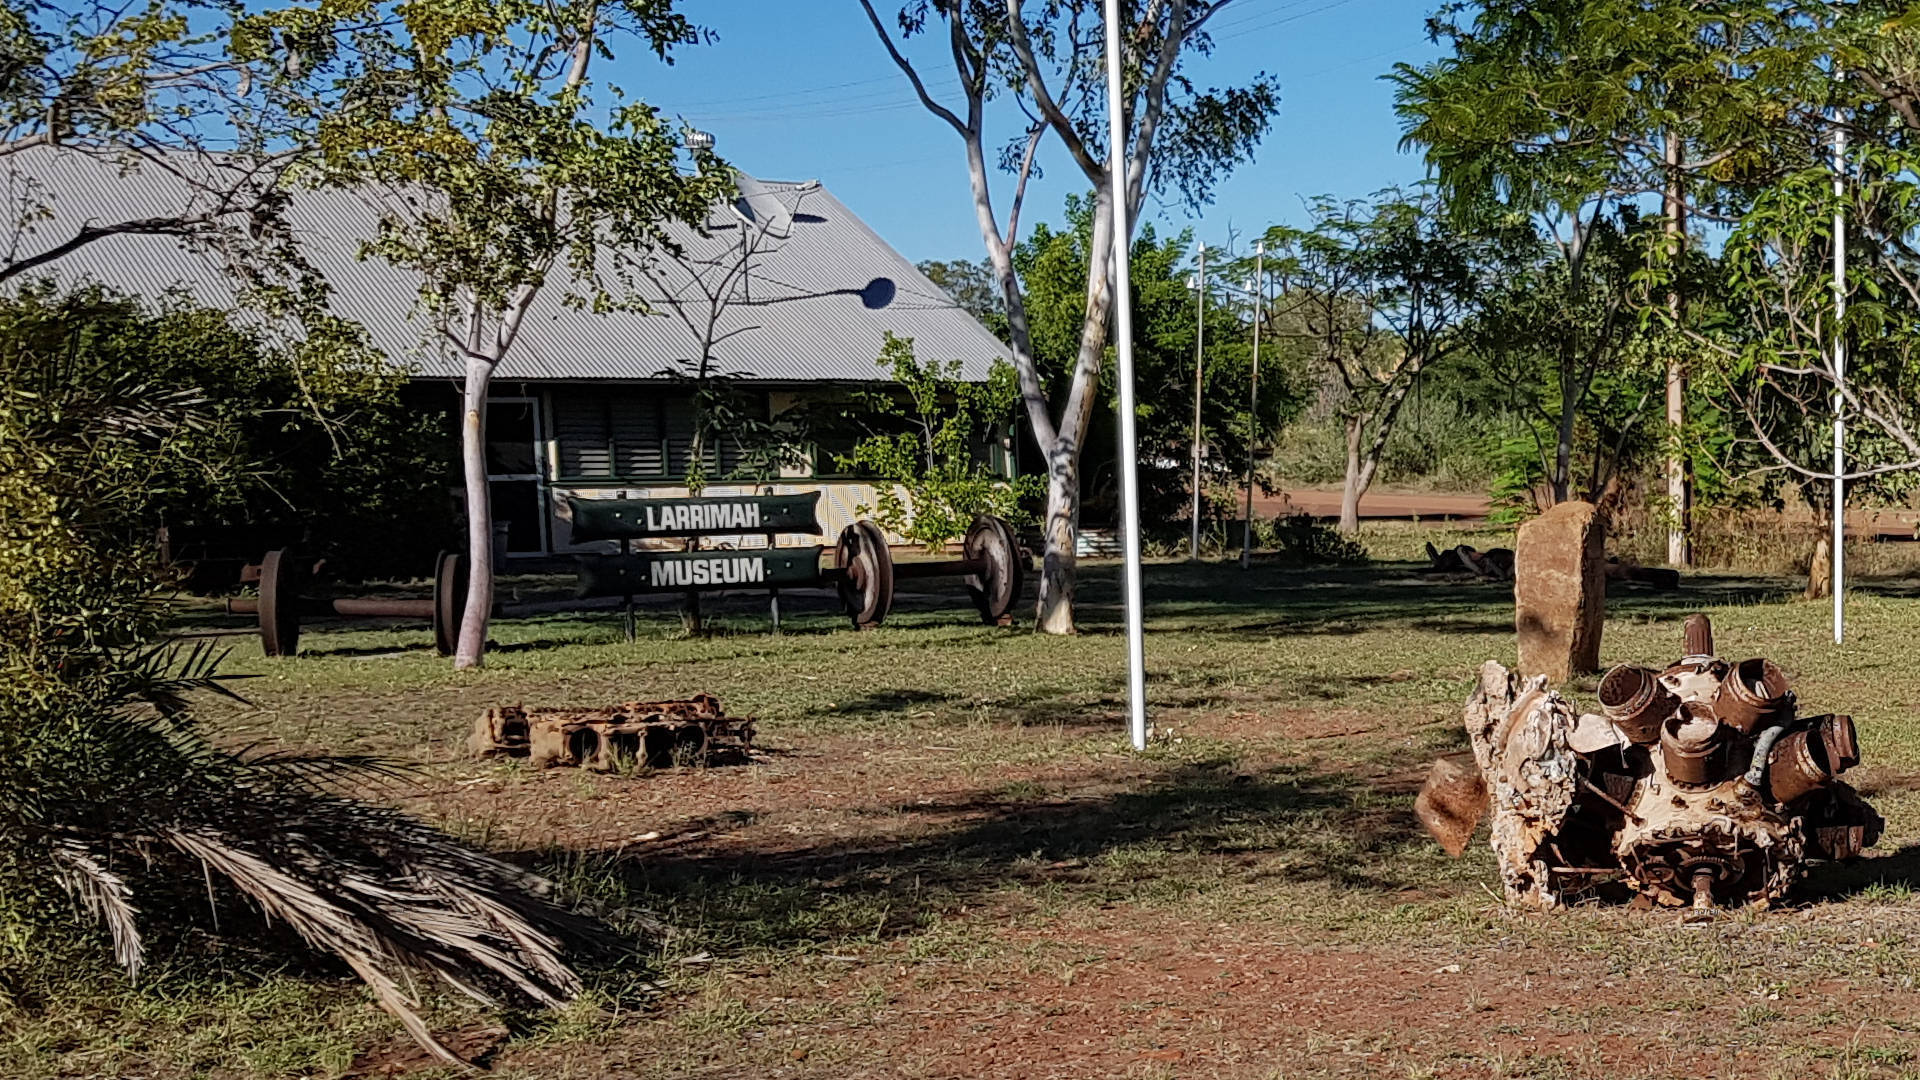 Outside of the Larrimah Museum